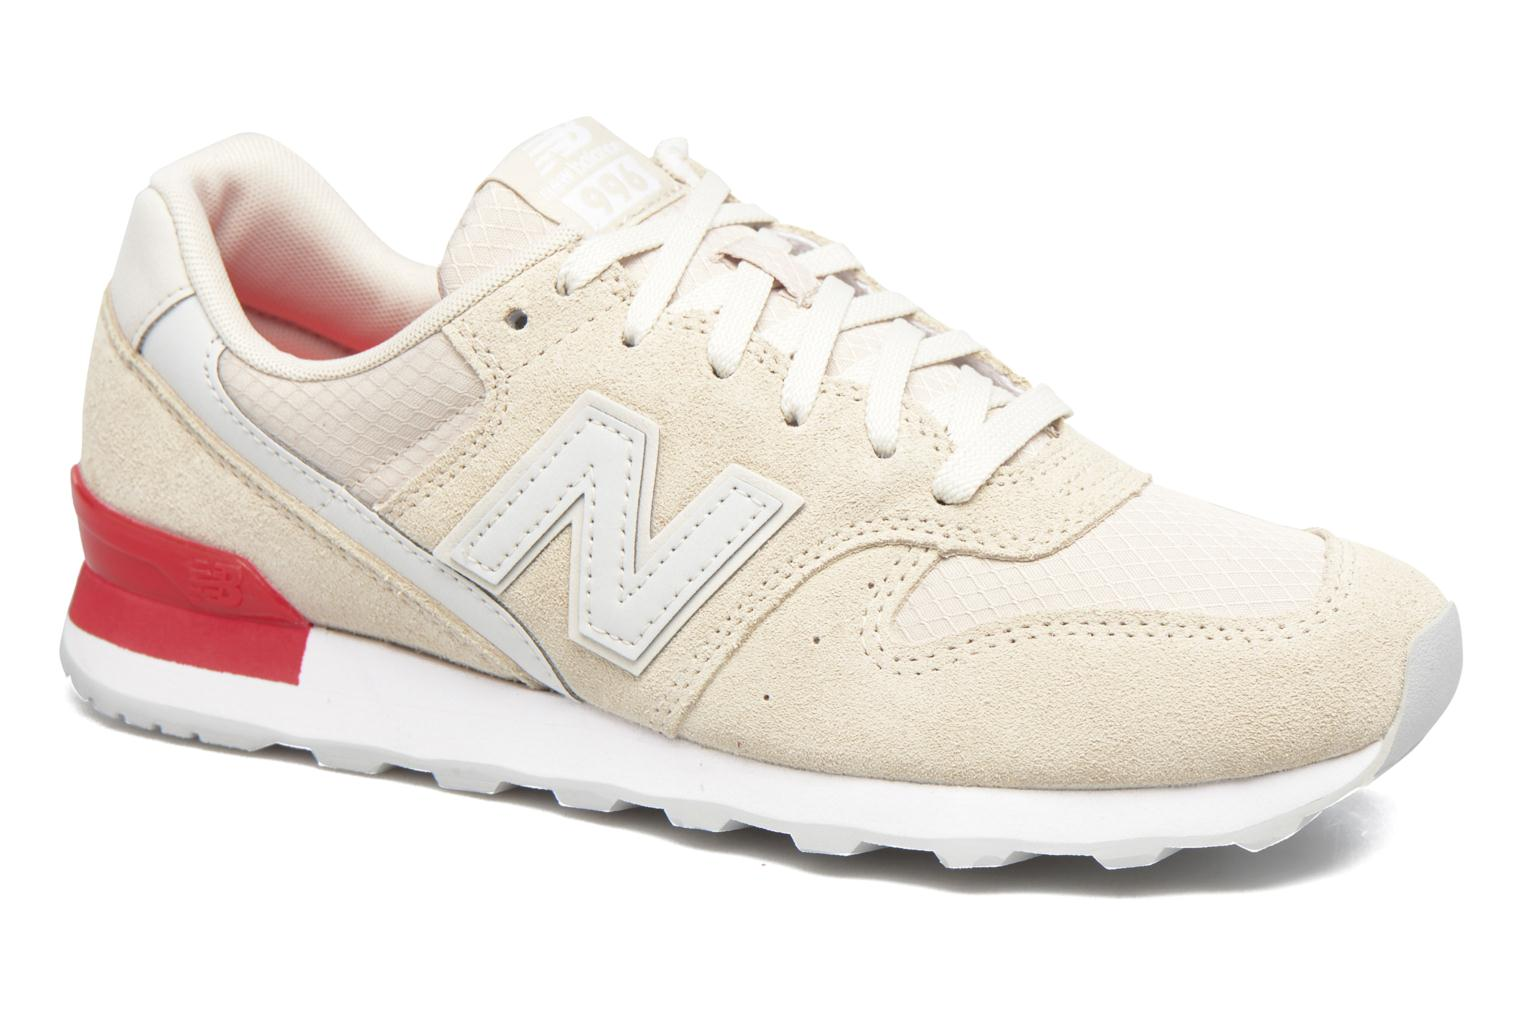 WR996 White/red